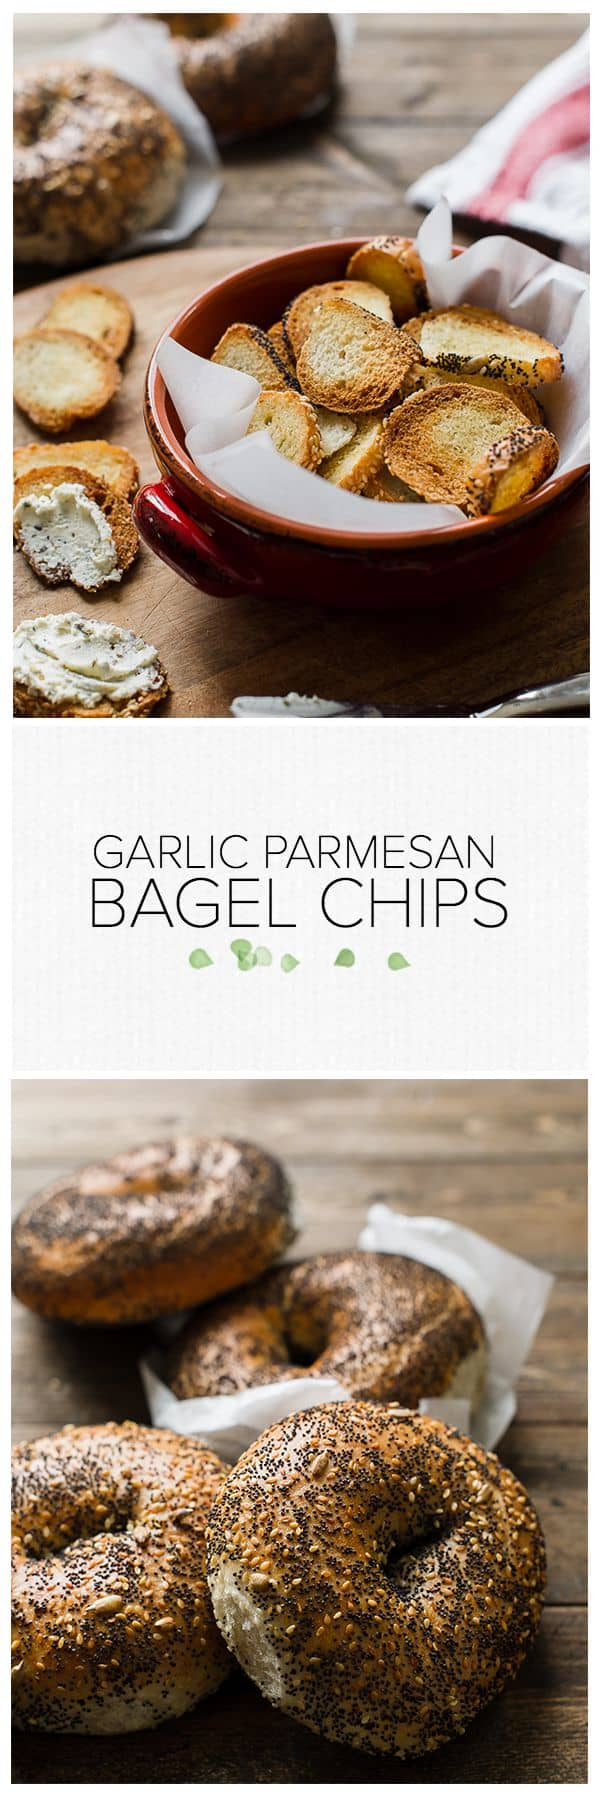 Garlic Parmesan Bagel Chips | www.kitchenconfidante.com | Extra bagels? Make bagel chips!